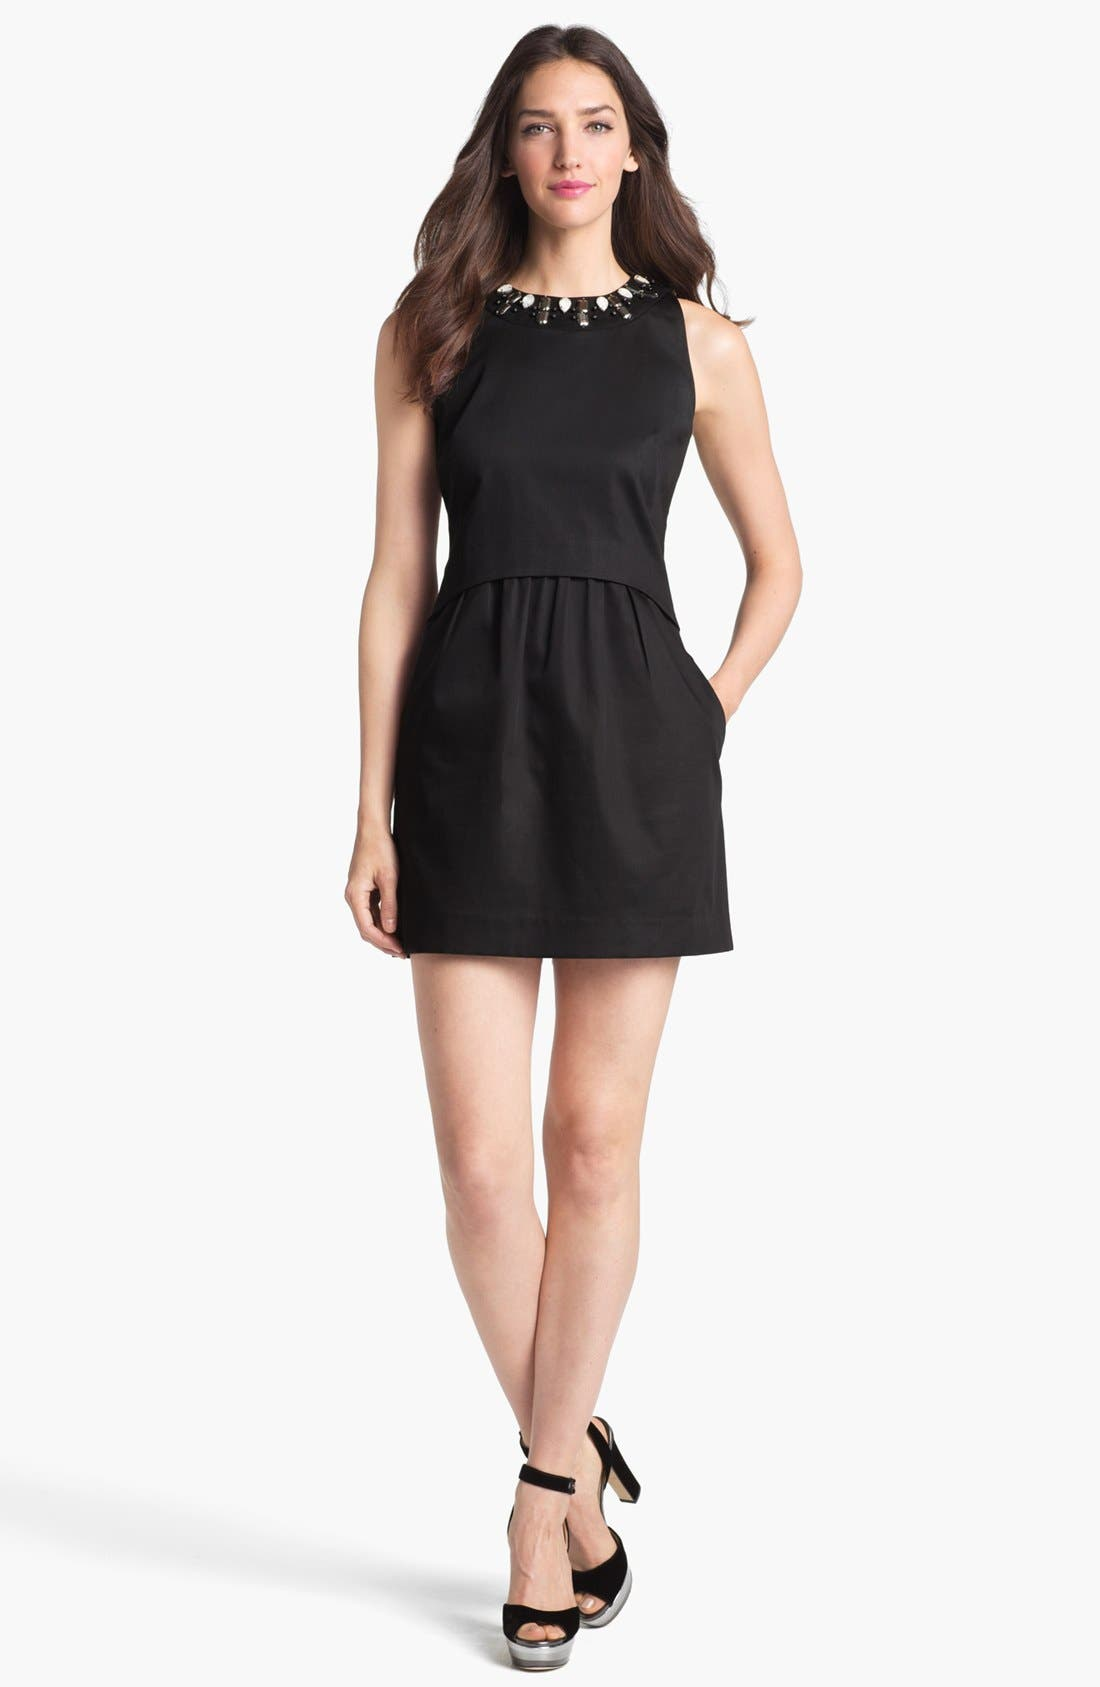 Alternate Image 1 Selected - Milly 'Astrid' Embellished Stretch Cotton Sheath Dress